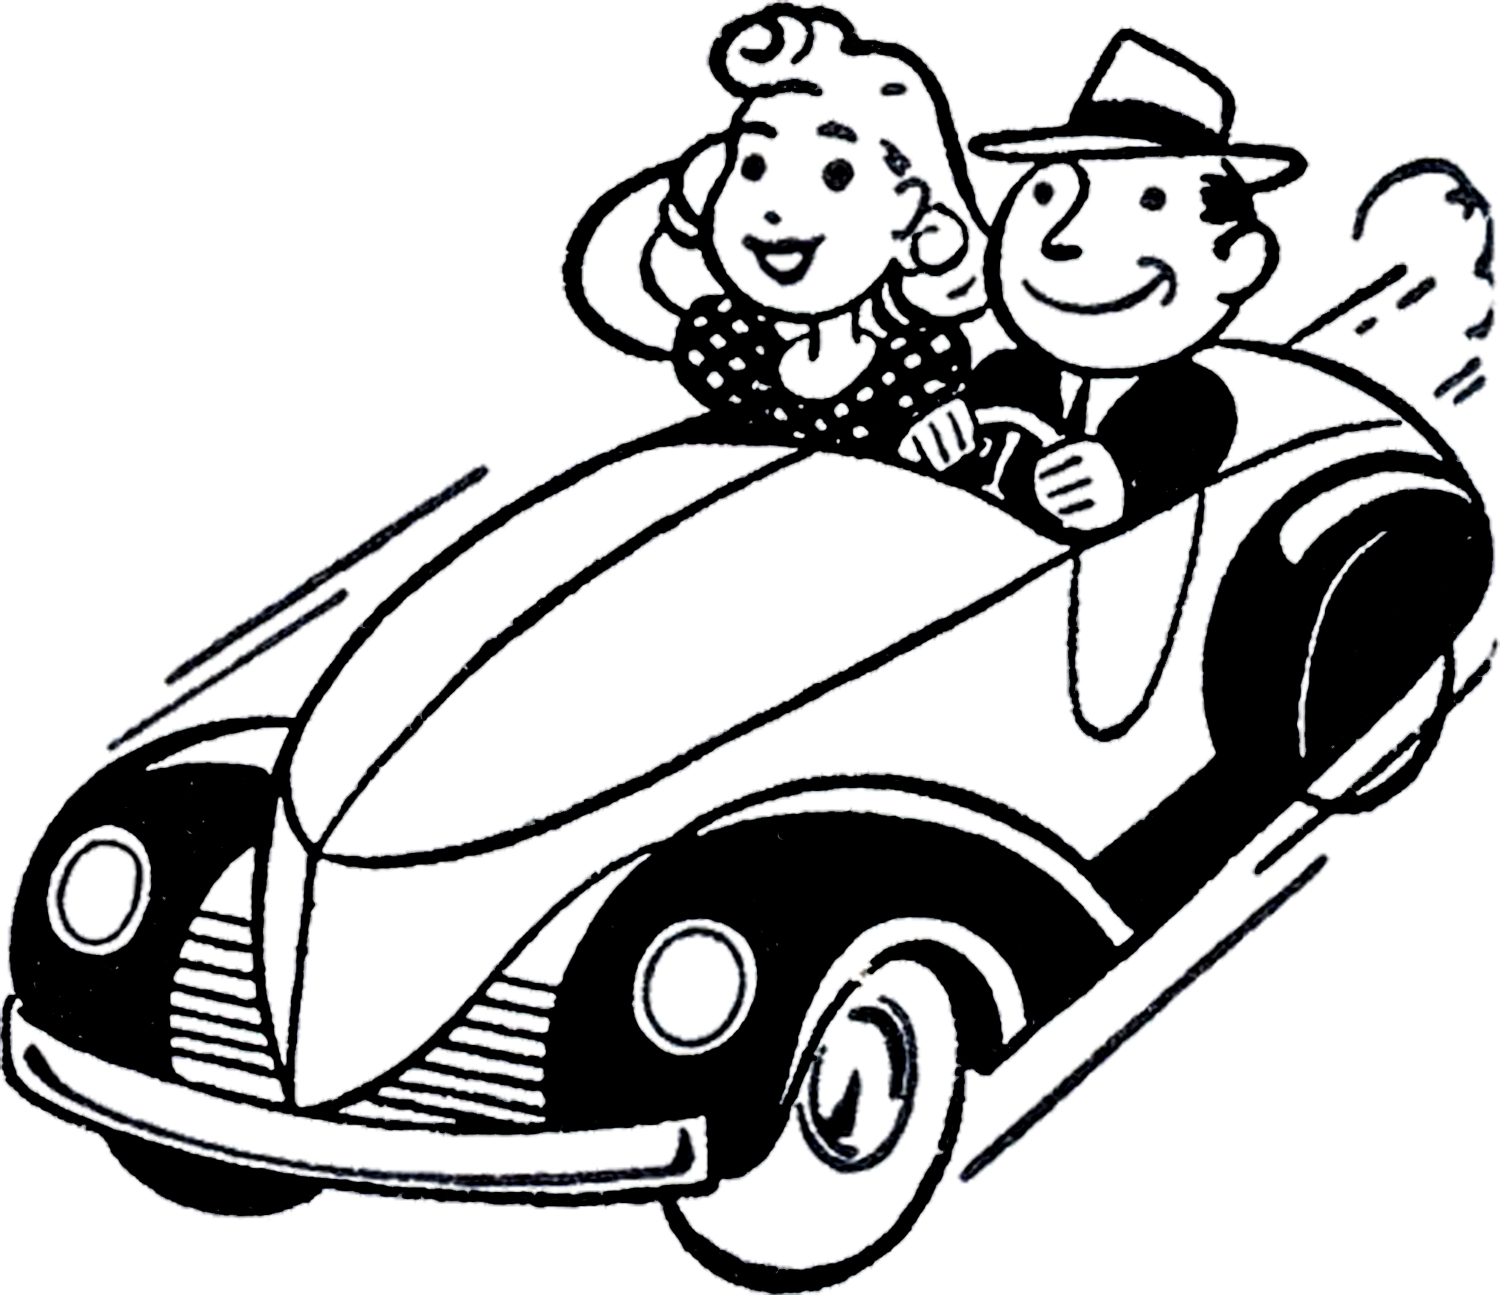 50 S Car Back Clipart - Clipart Kid